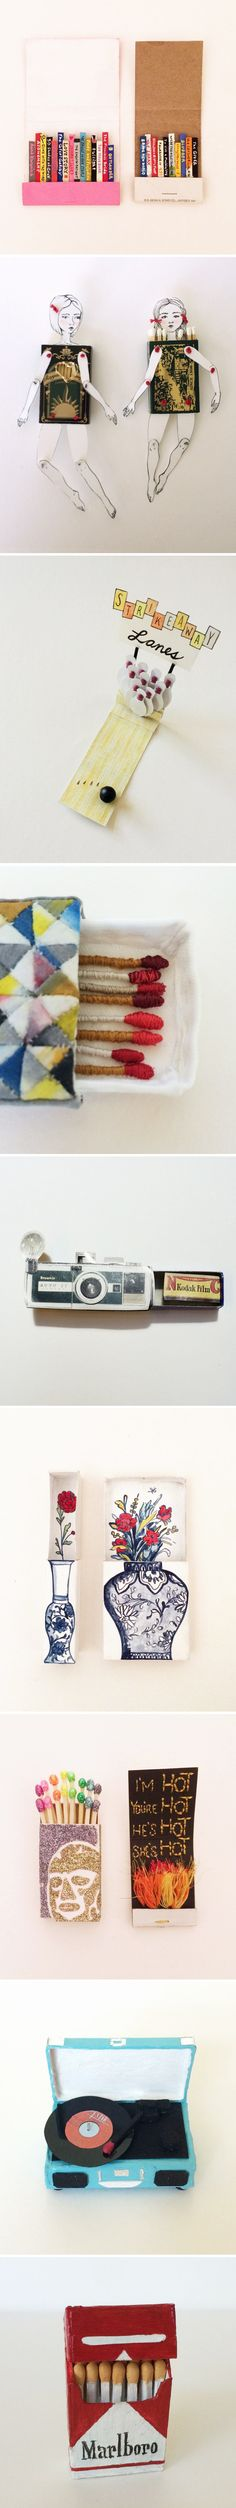 #strikeaway - a group show FILLED with matchbook art! <3